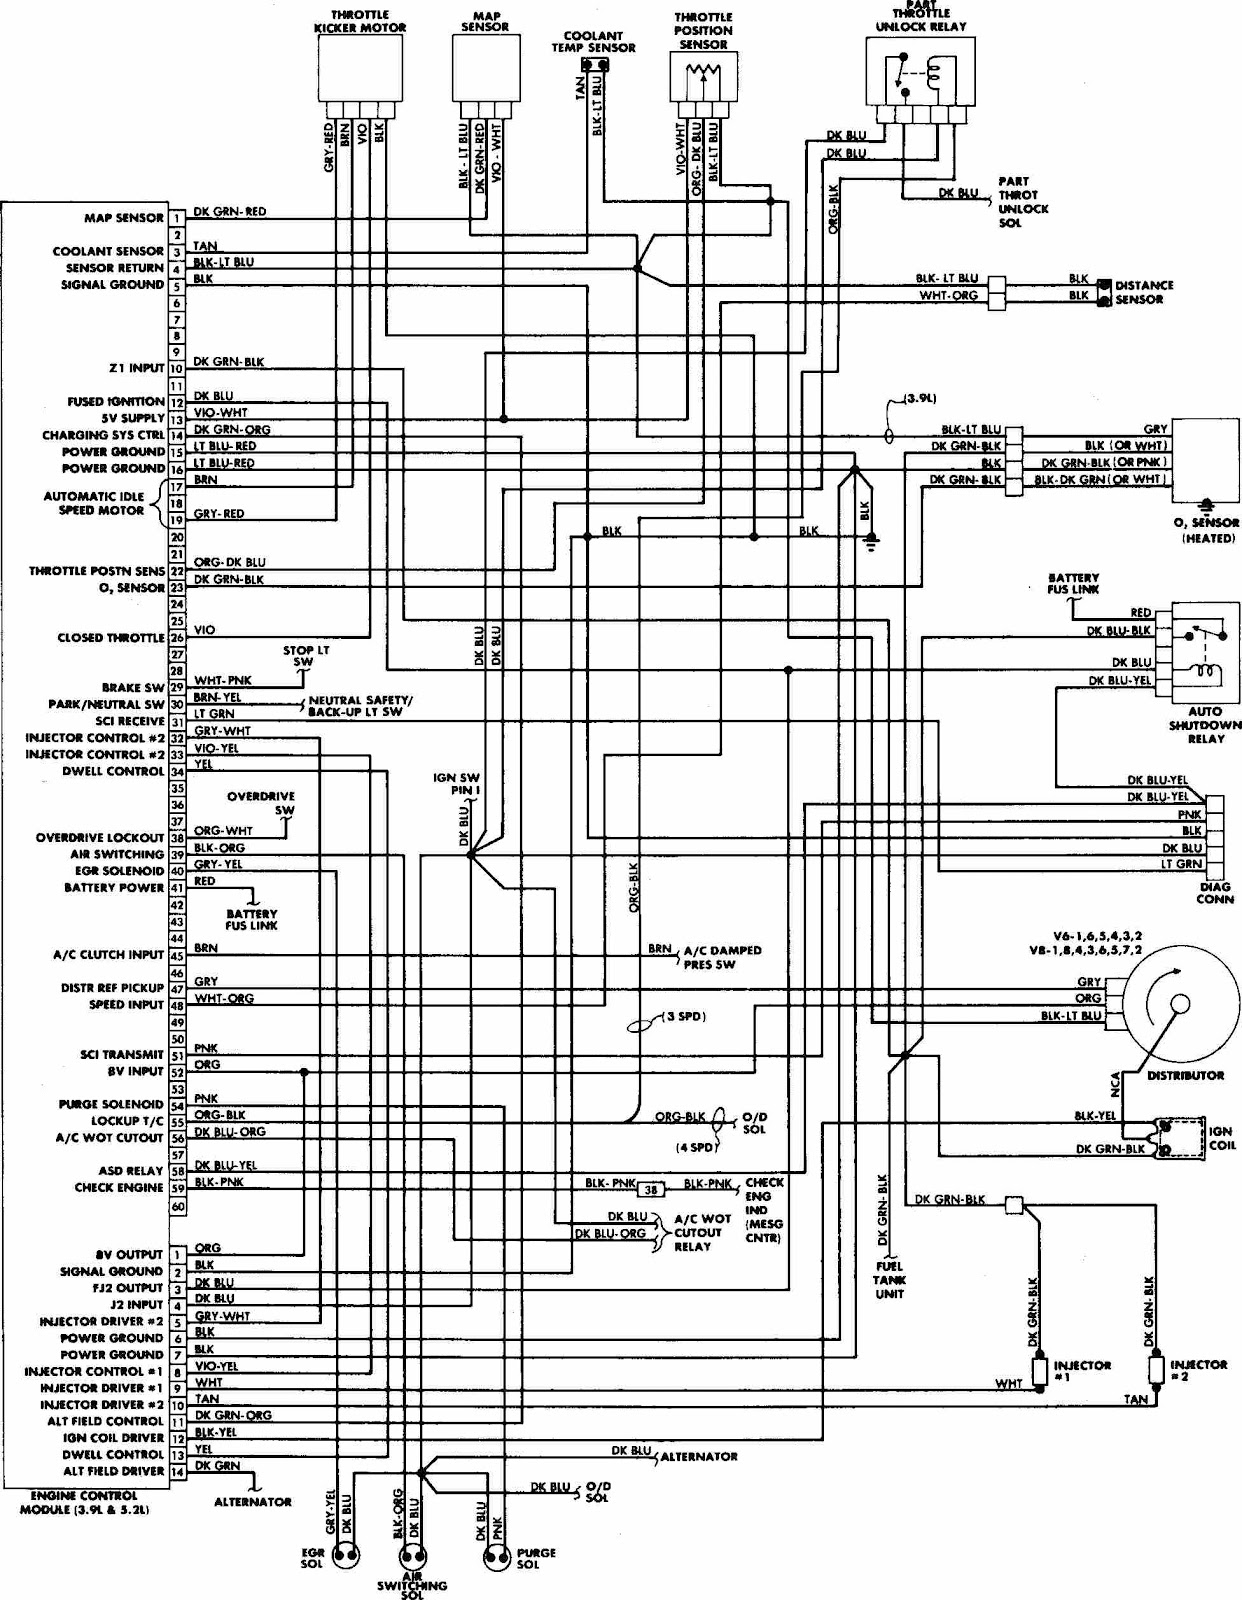 2006 Dodge Caravan Radio Wiring Diagram Ford Sierra Electronic Ignition 1996 Front Blower Motor All